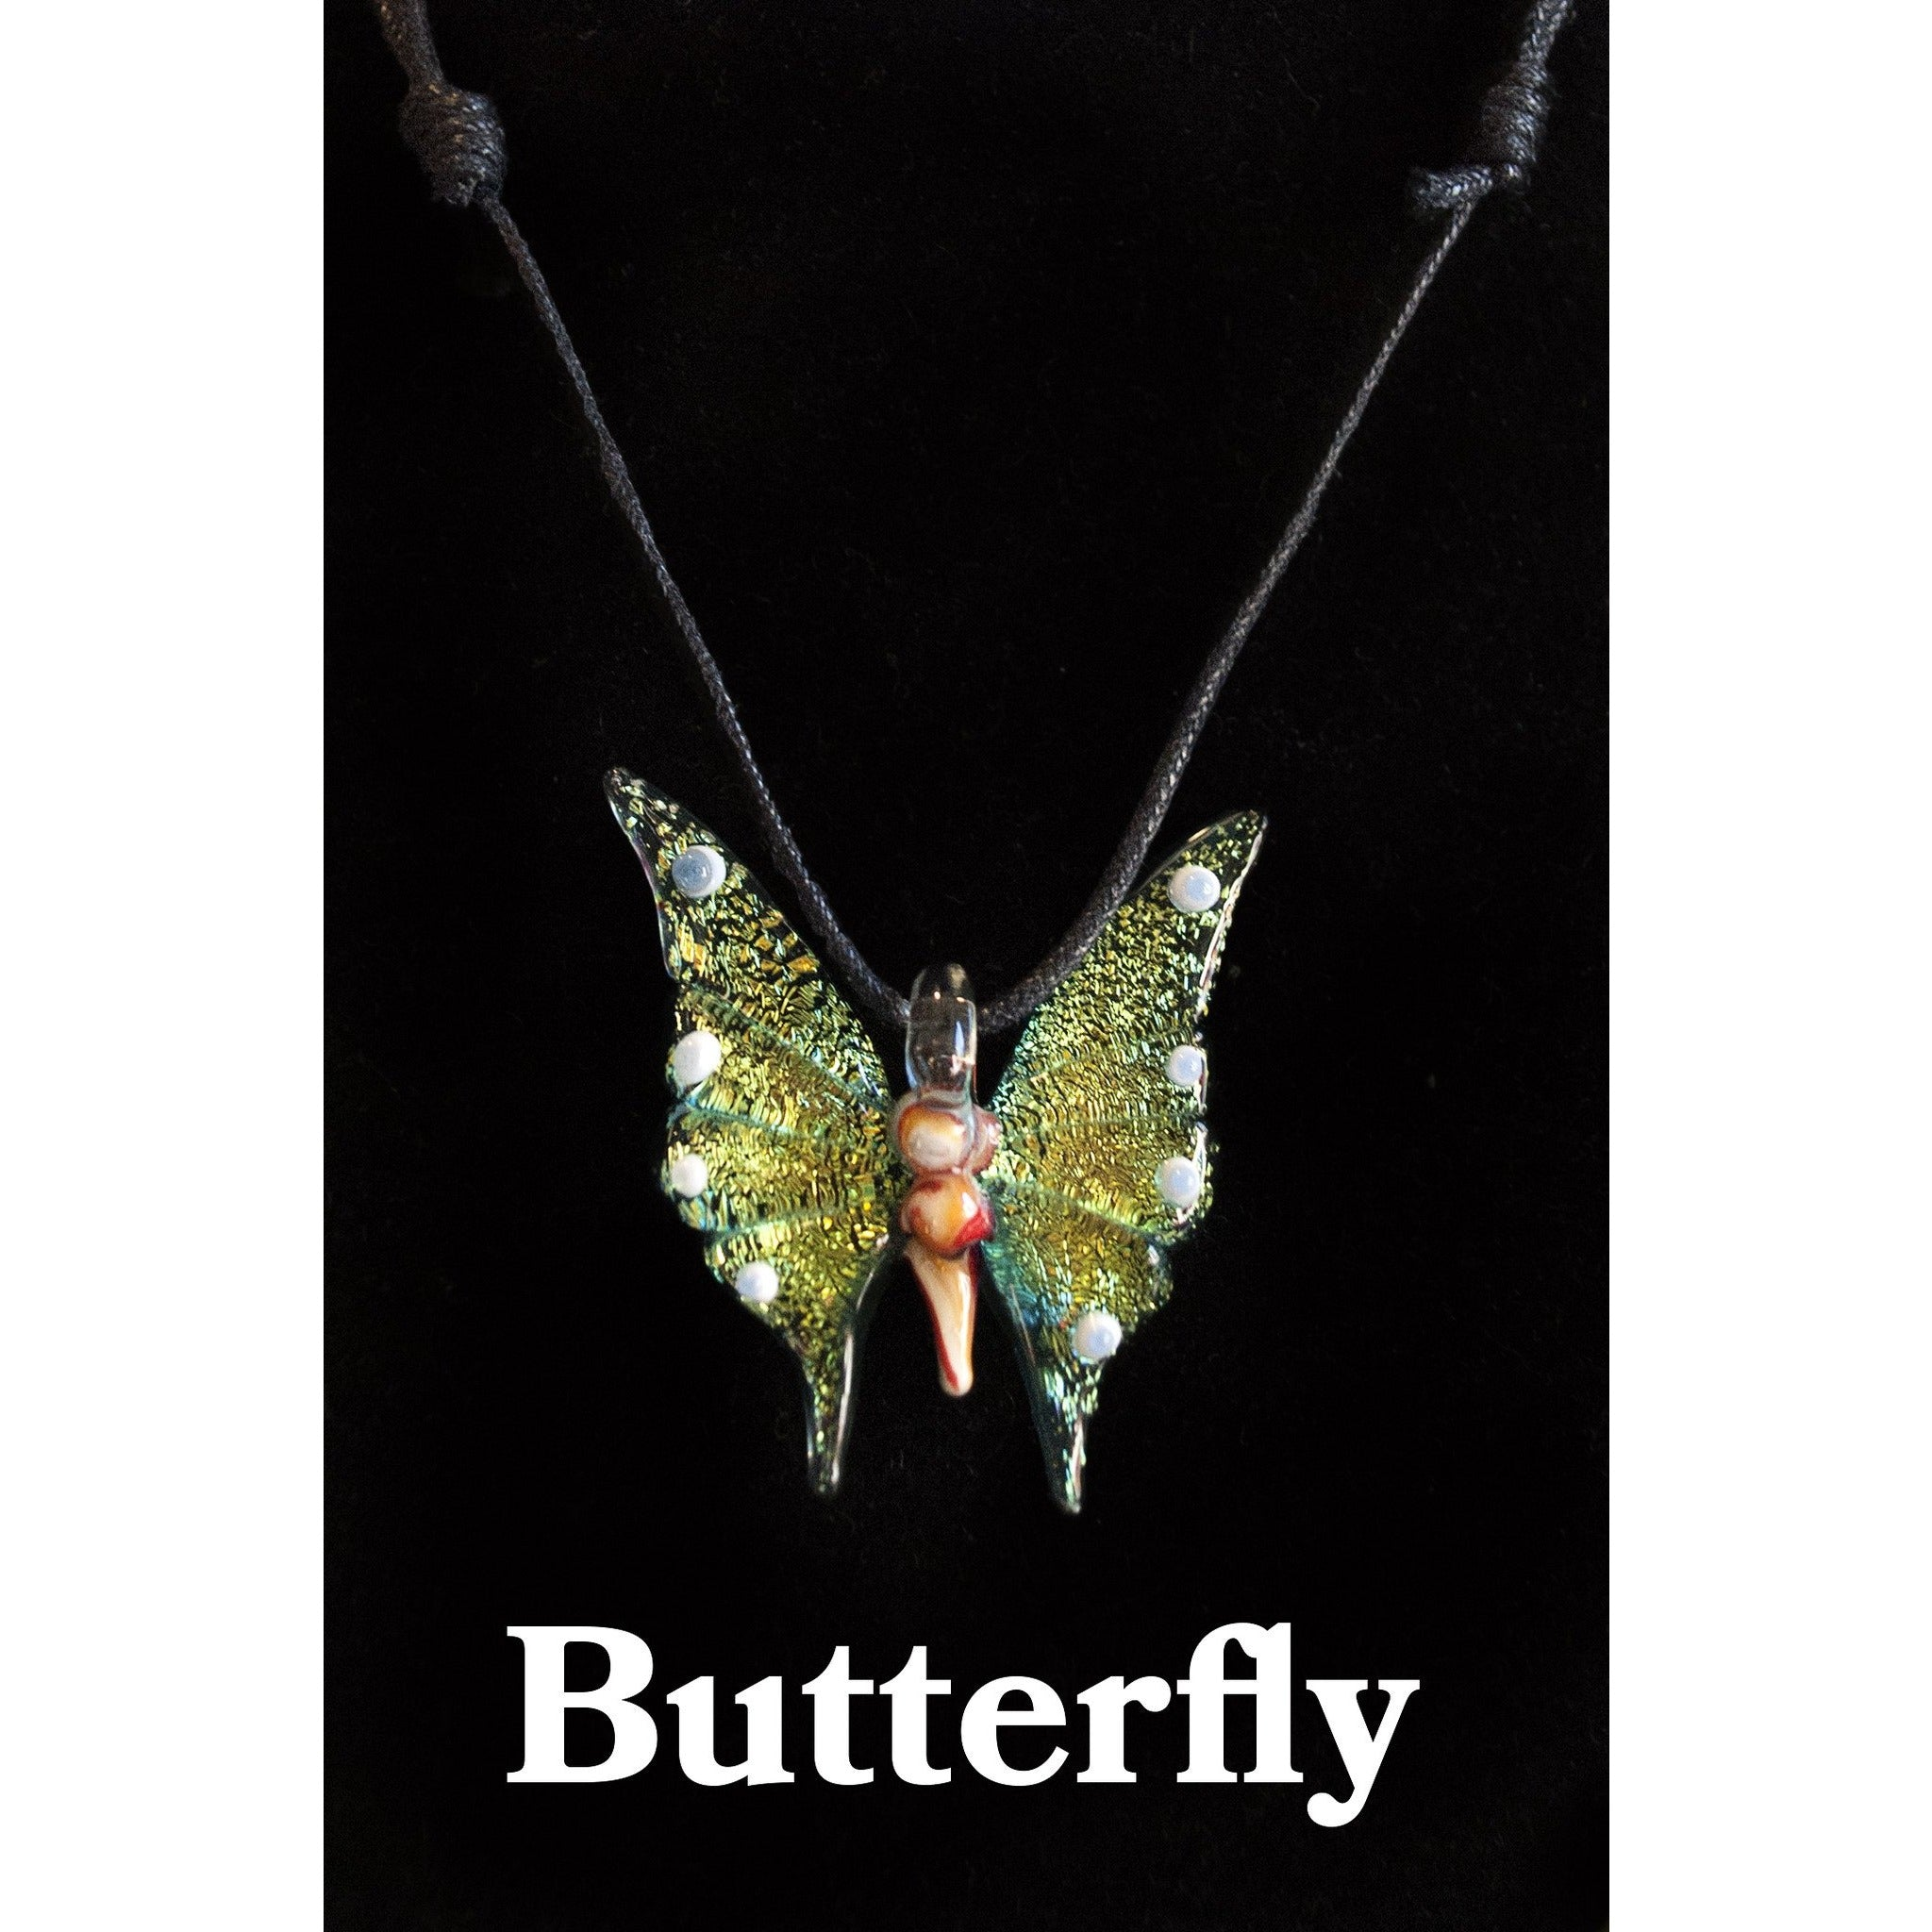 Butterfly Glass Necklace - Cali Kind Clothing Co.